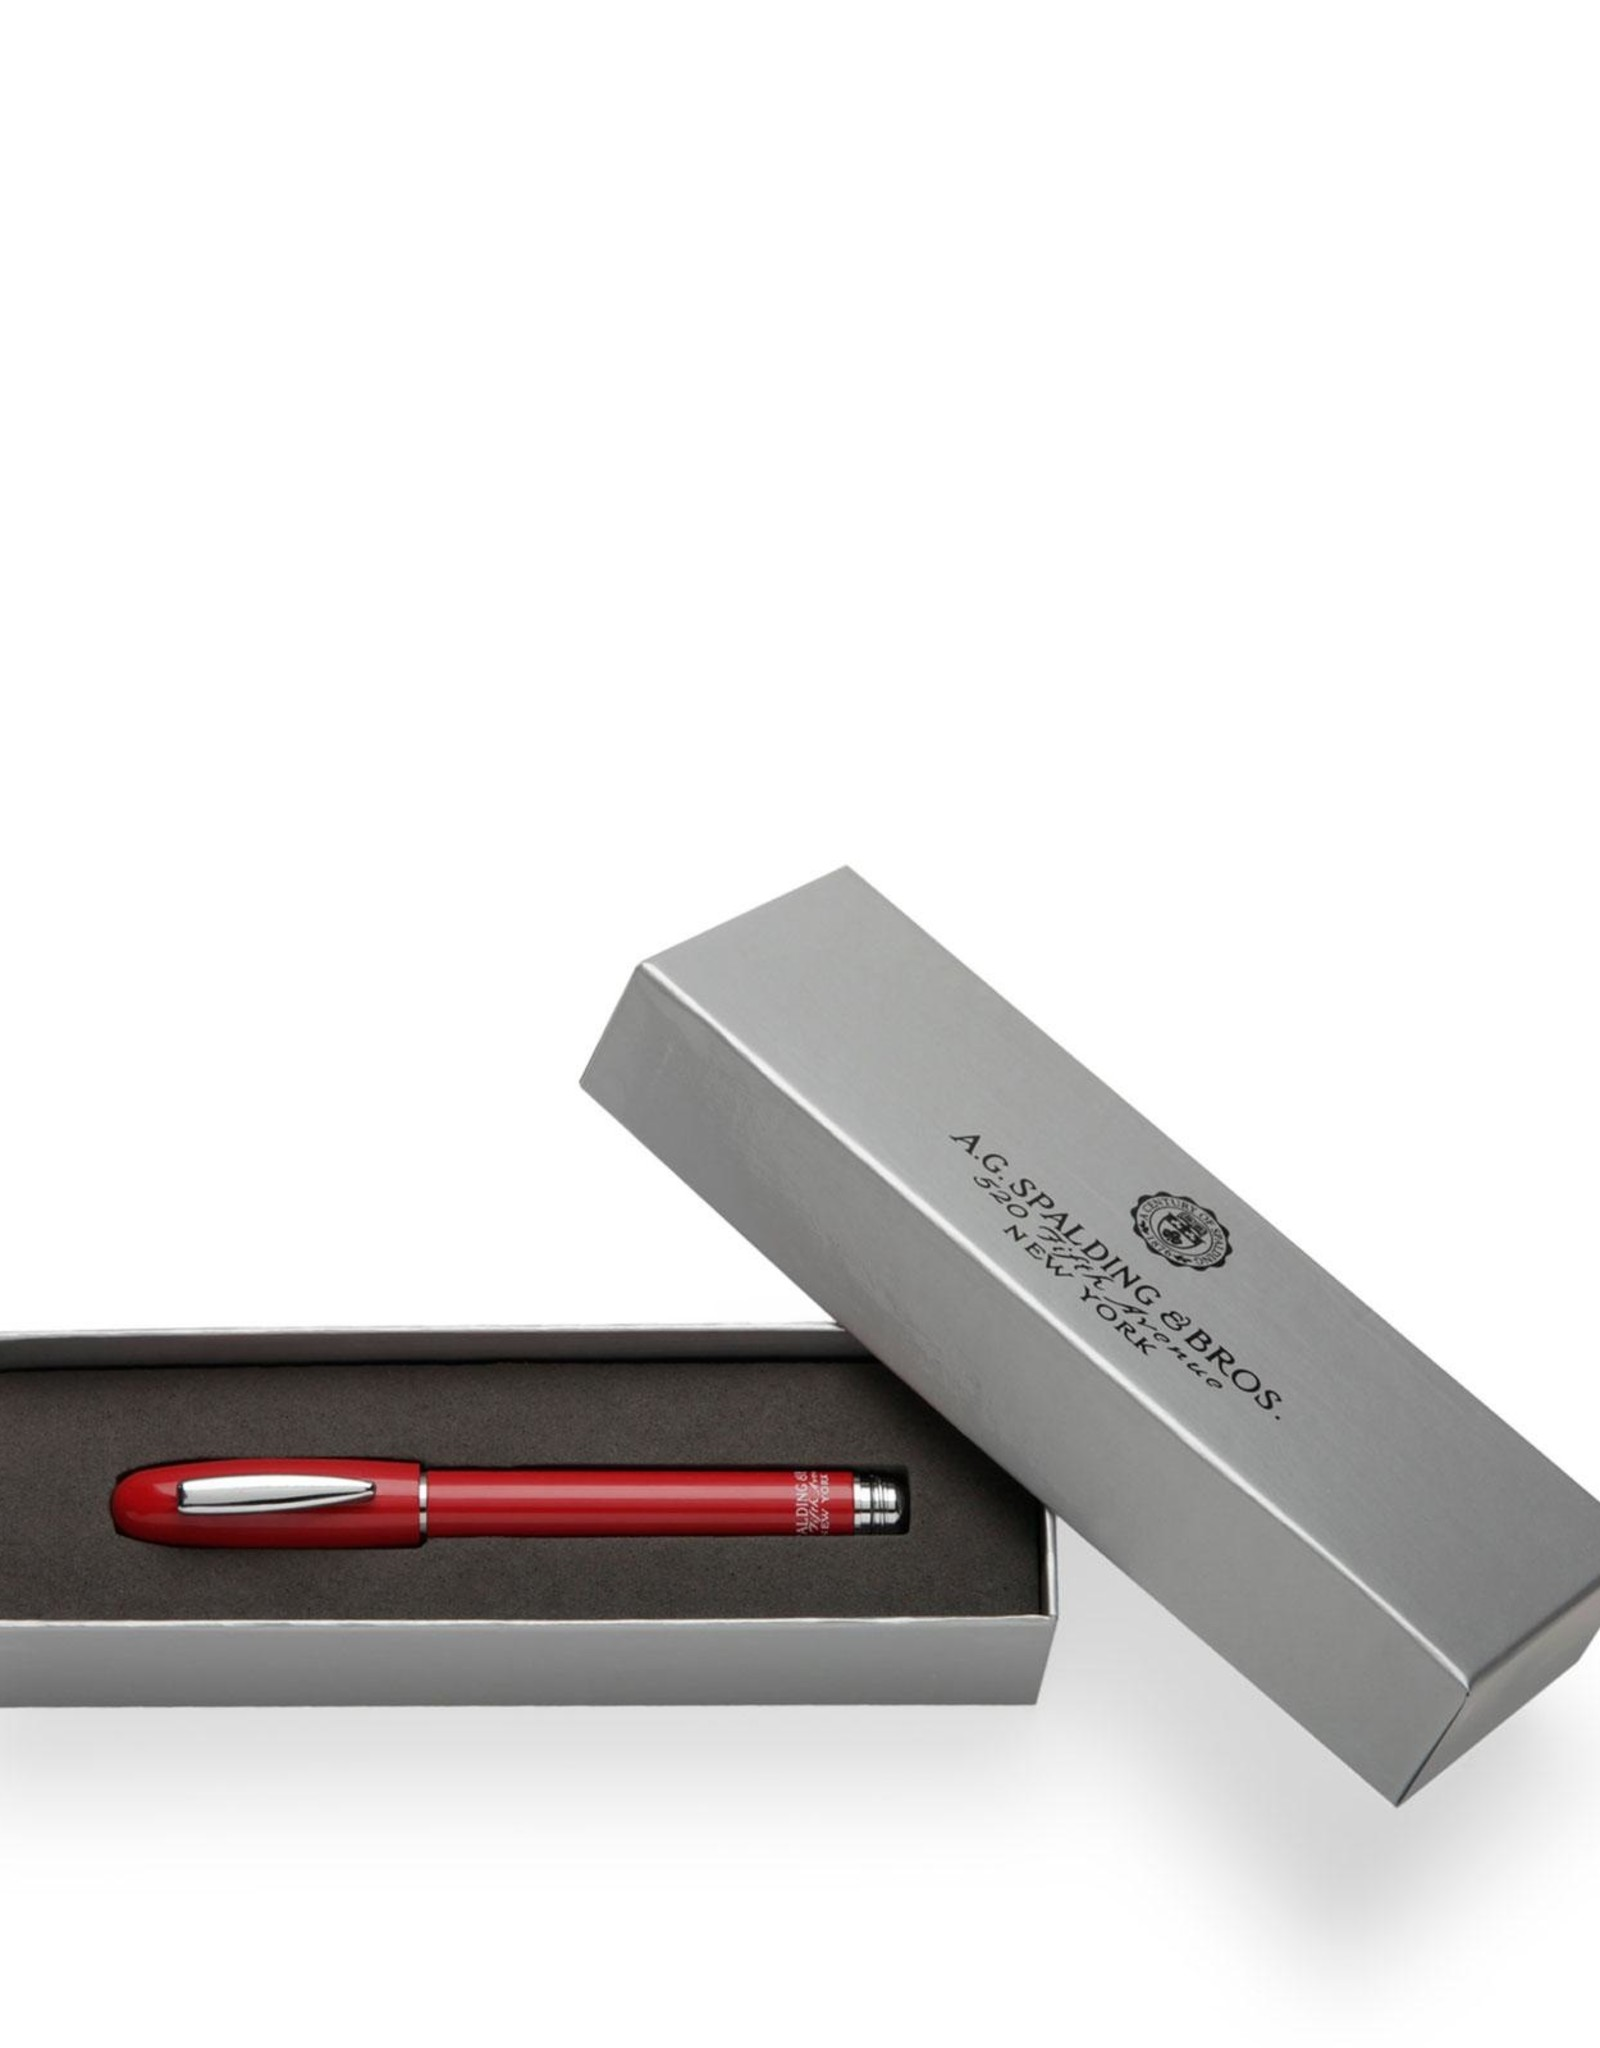 A.G. Spalding Spalding Classic Rollerball Pen